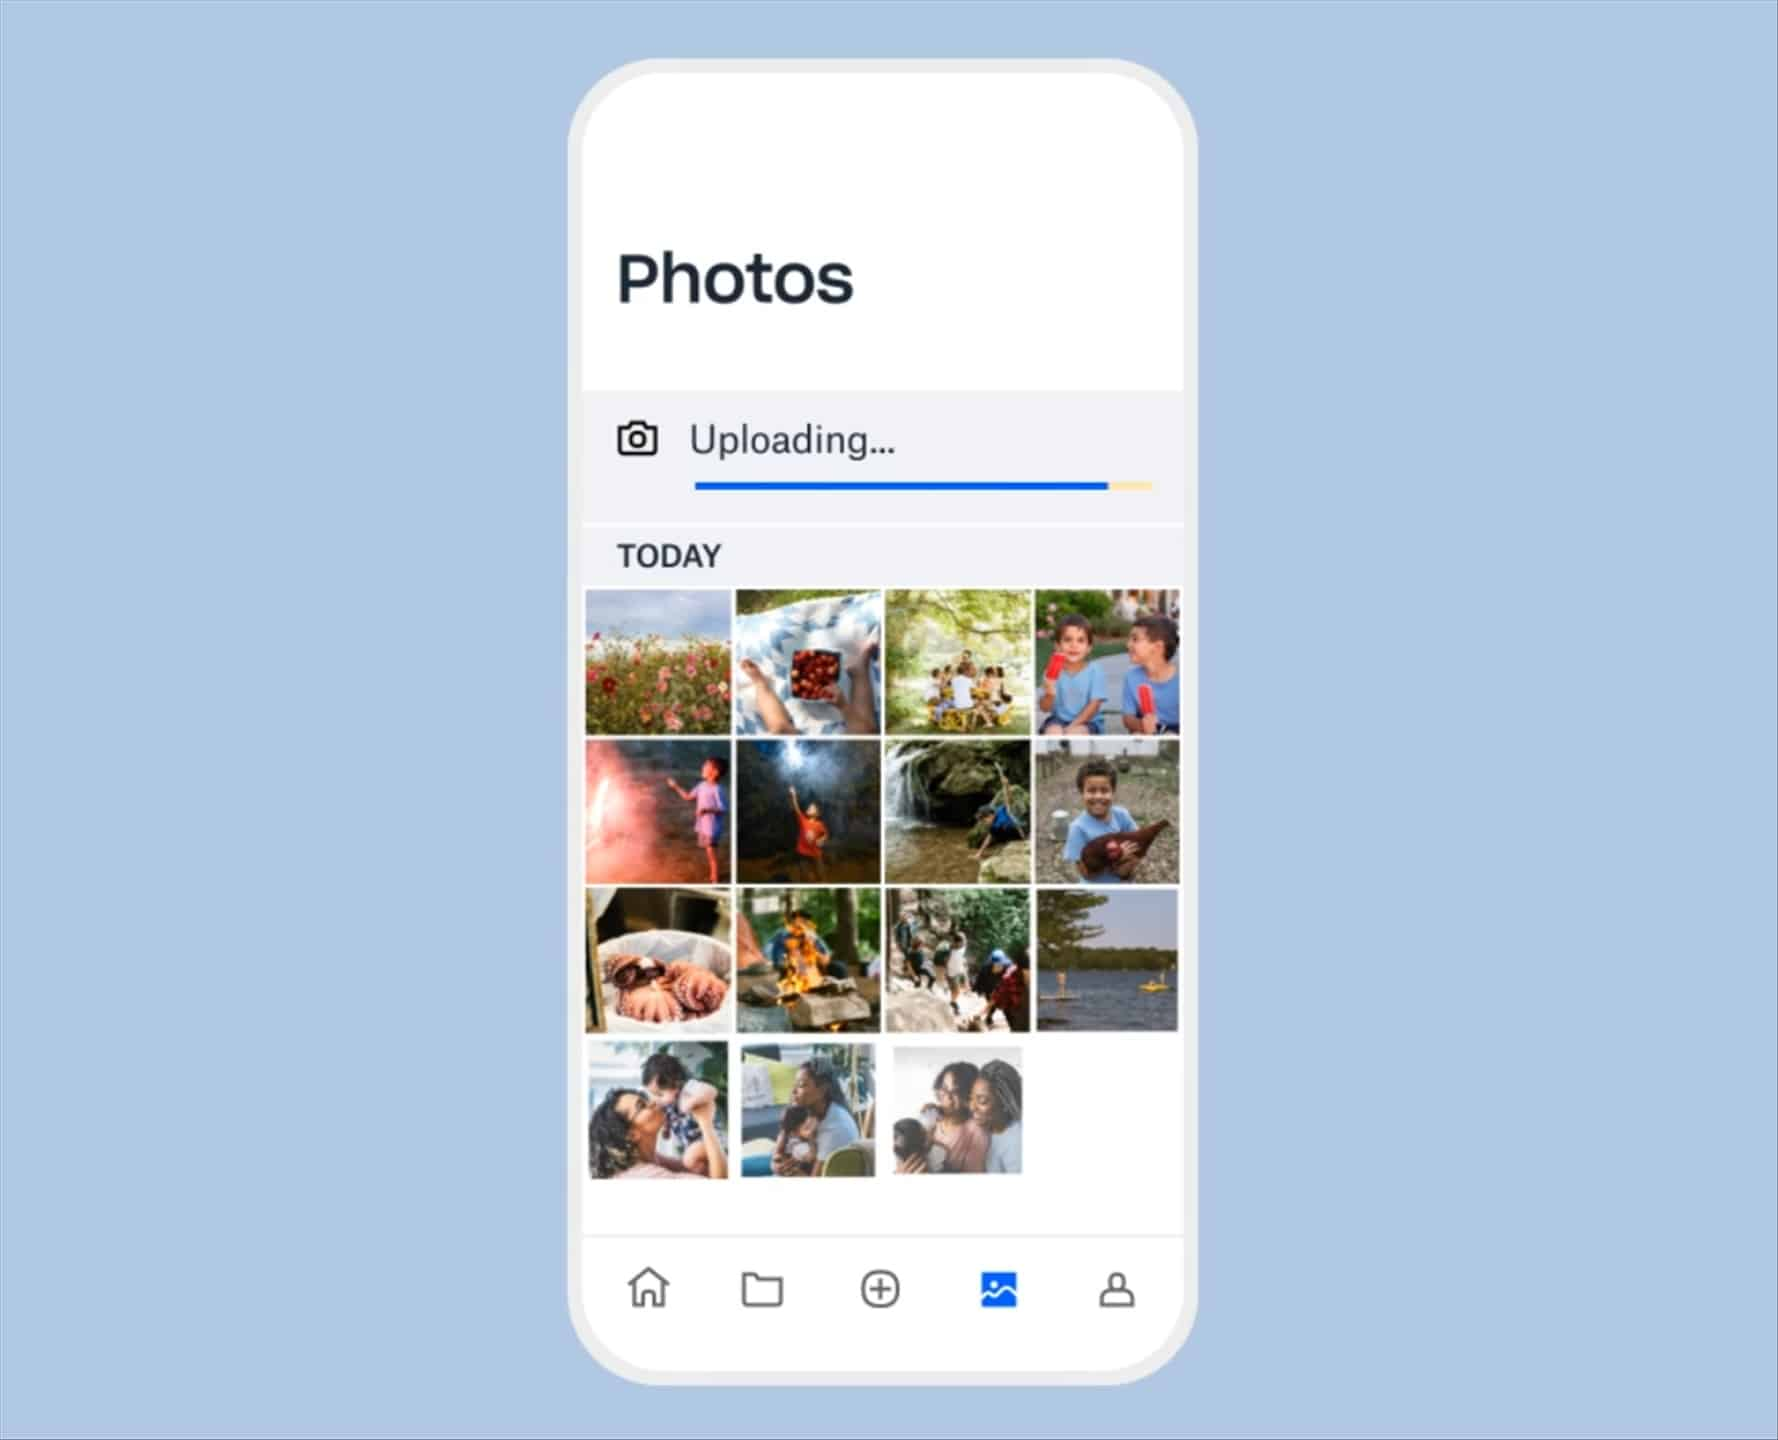 New, free Dropbox feature allows you to backup your phone photos to Dropbox automatically